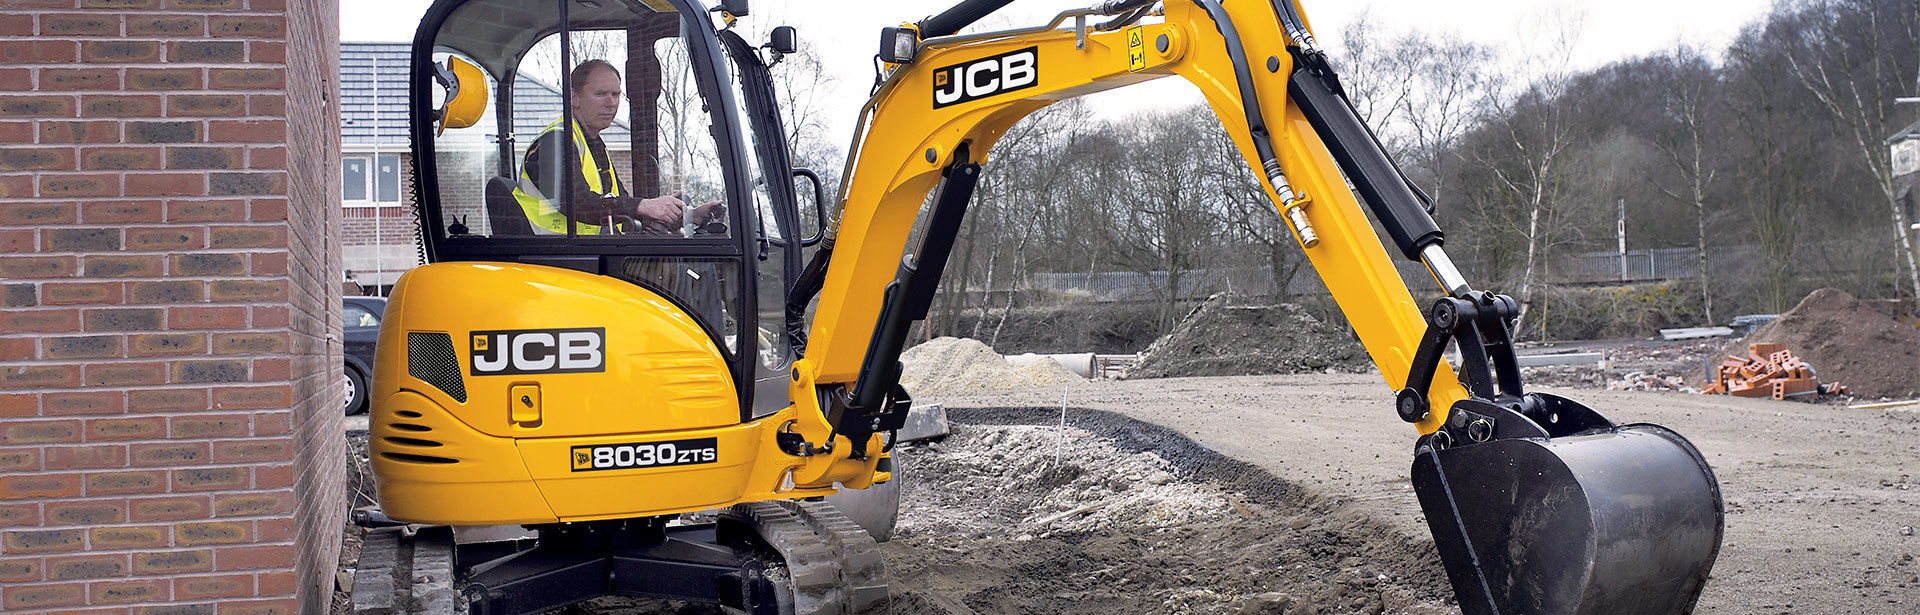 JCB 8030 Mini Excavators Dubai